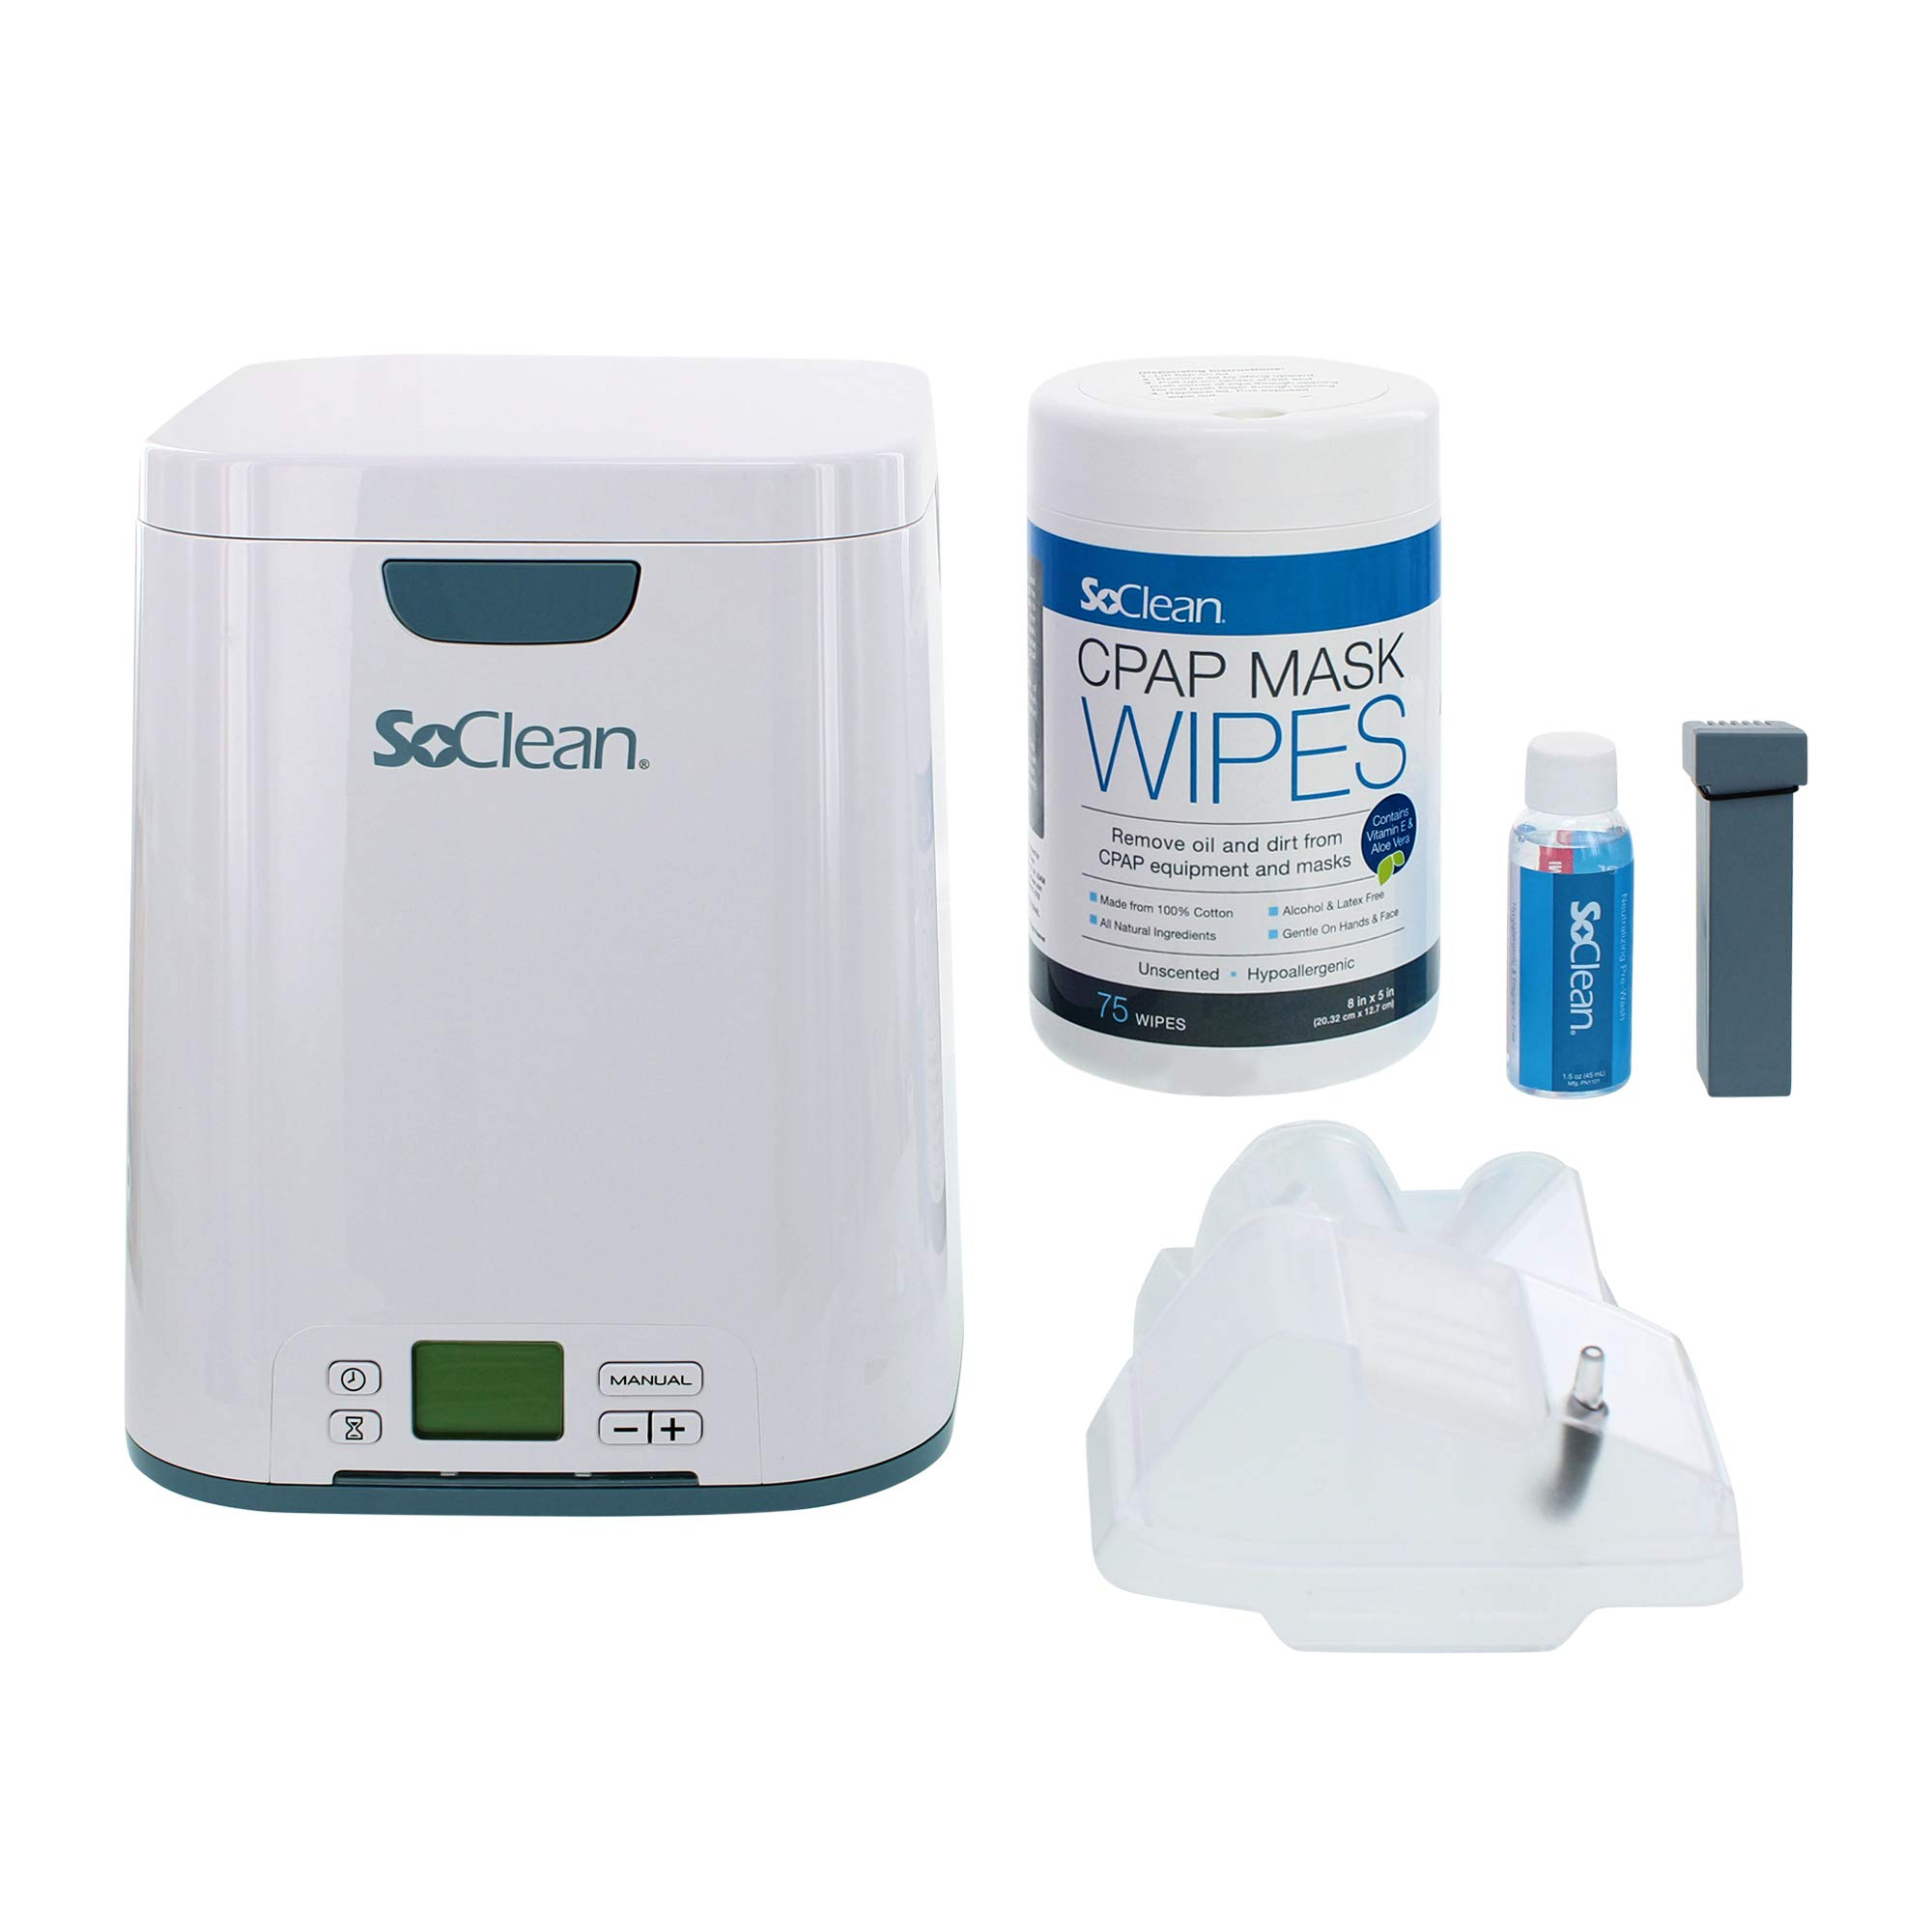 SoClean 2 CPAP Cleaner and Sanitizing Machine with AirSense 10 Adapter and Mask Wipes; with bonus generic CPAP Hose and CPAP Filters by SoClean